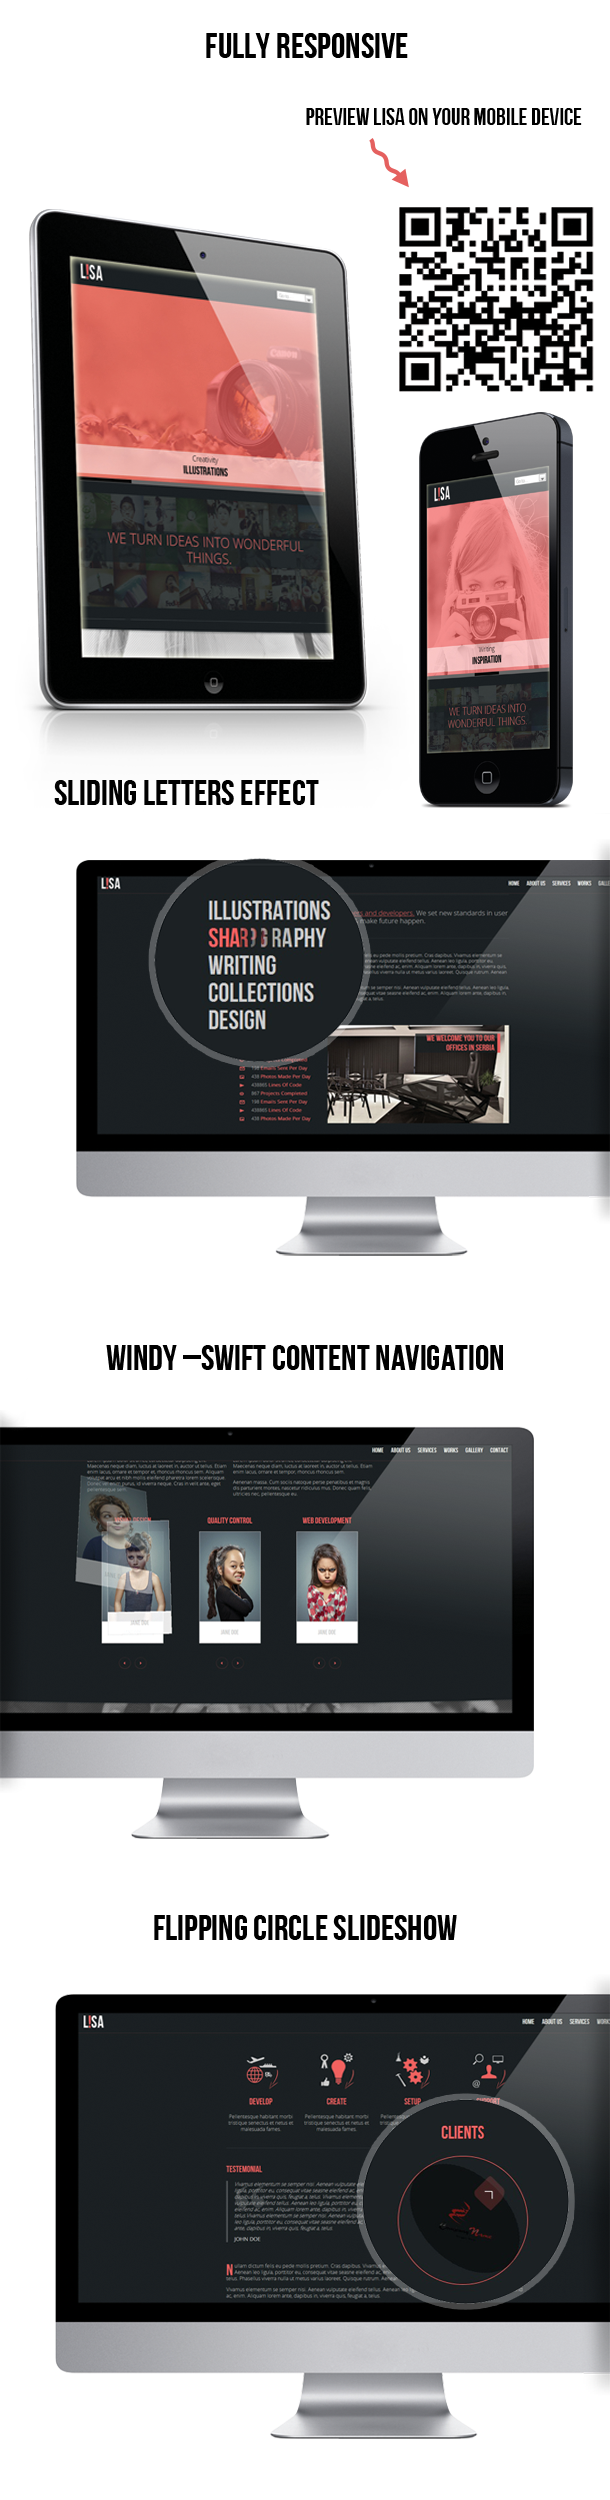 Lisa - Responsive One Page Parallax Template - 1